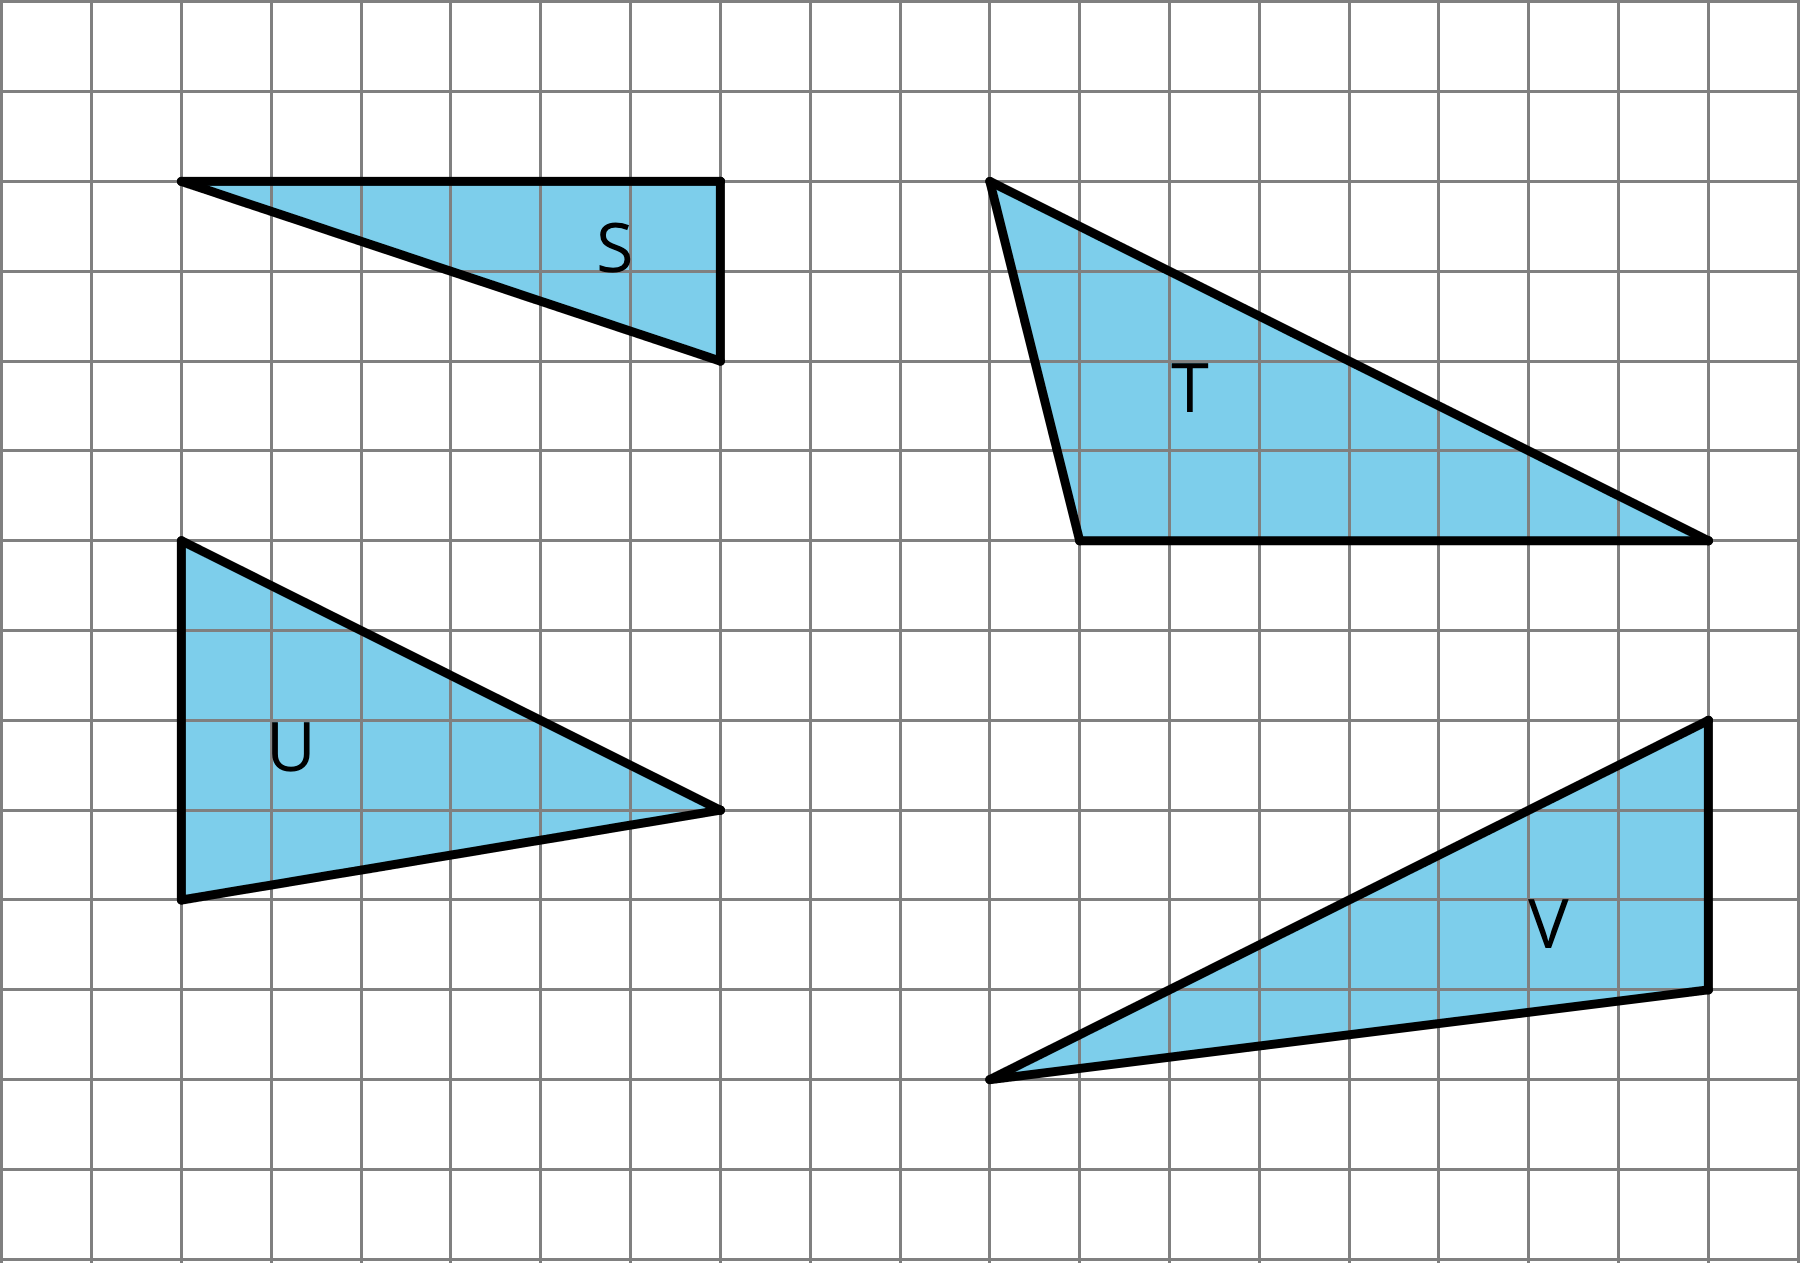 Four triangles on a grid, labeled S, T, U, and V.